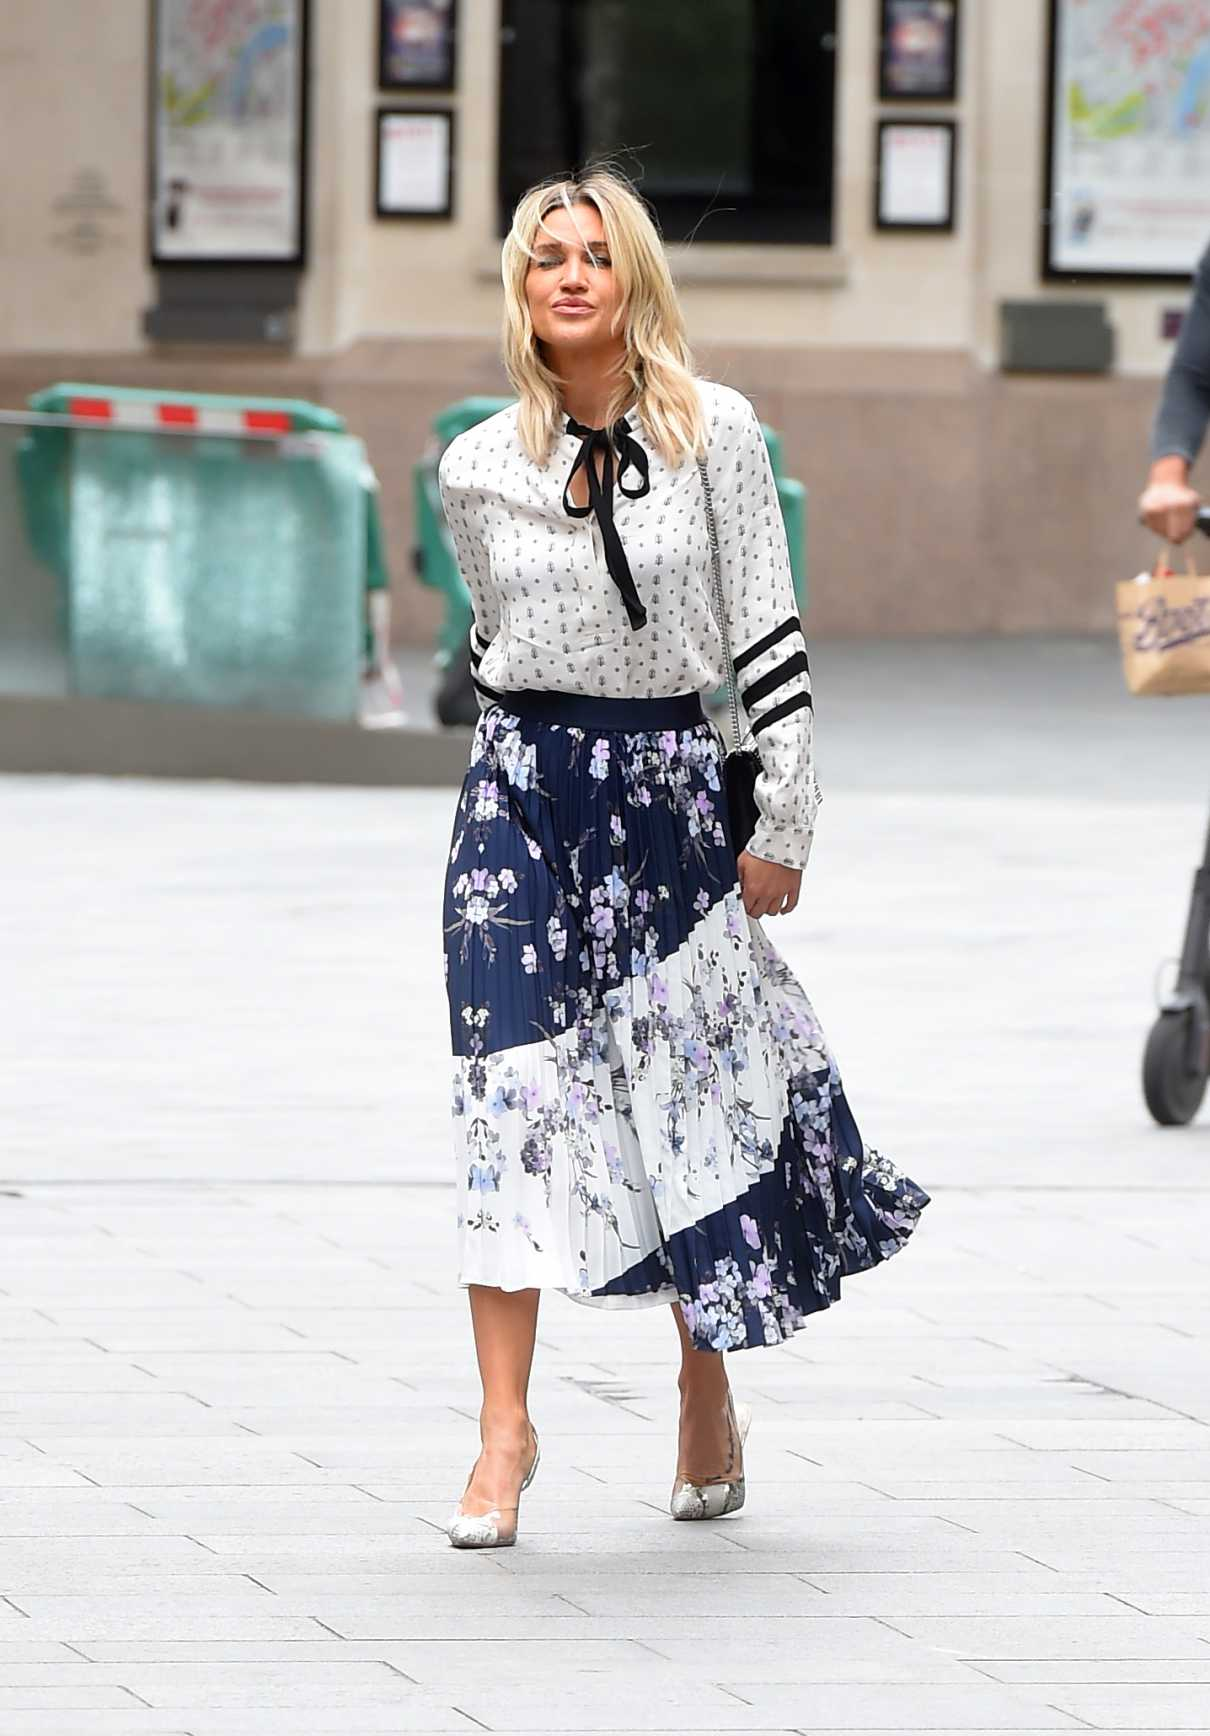 Ashley Roberts in a Floral Skirt